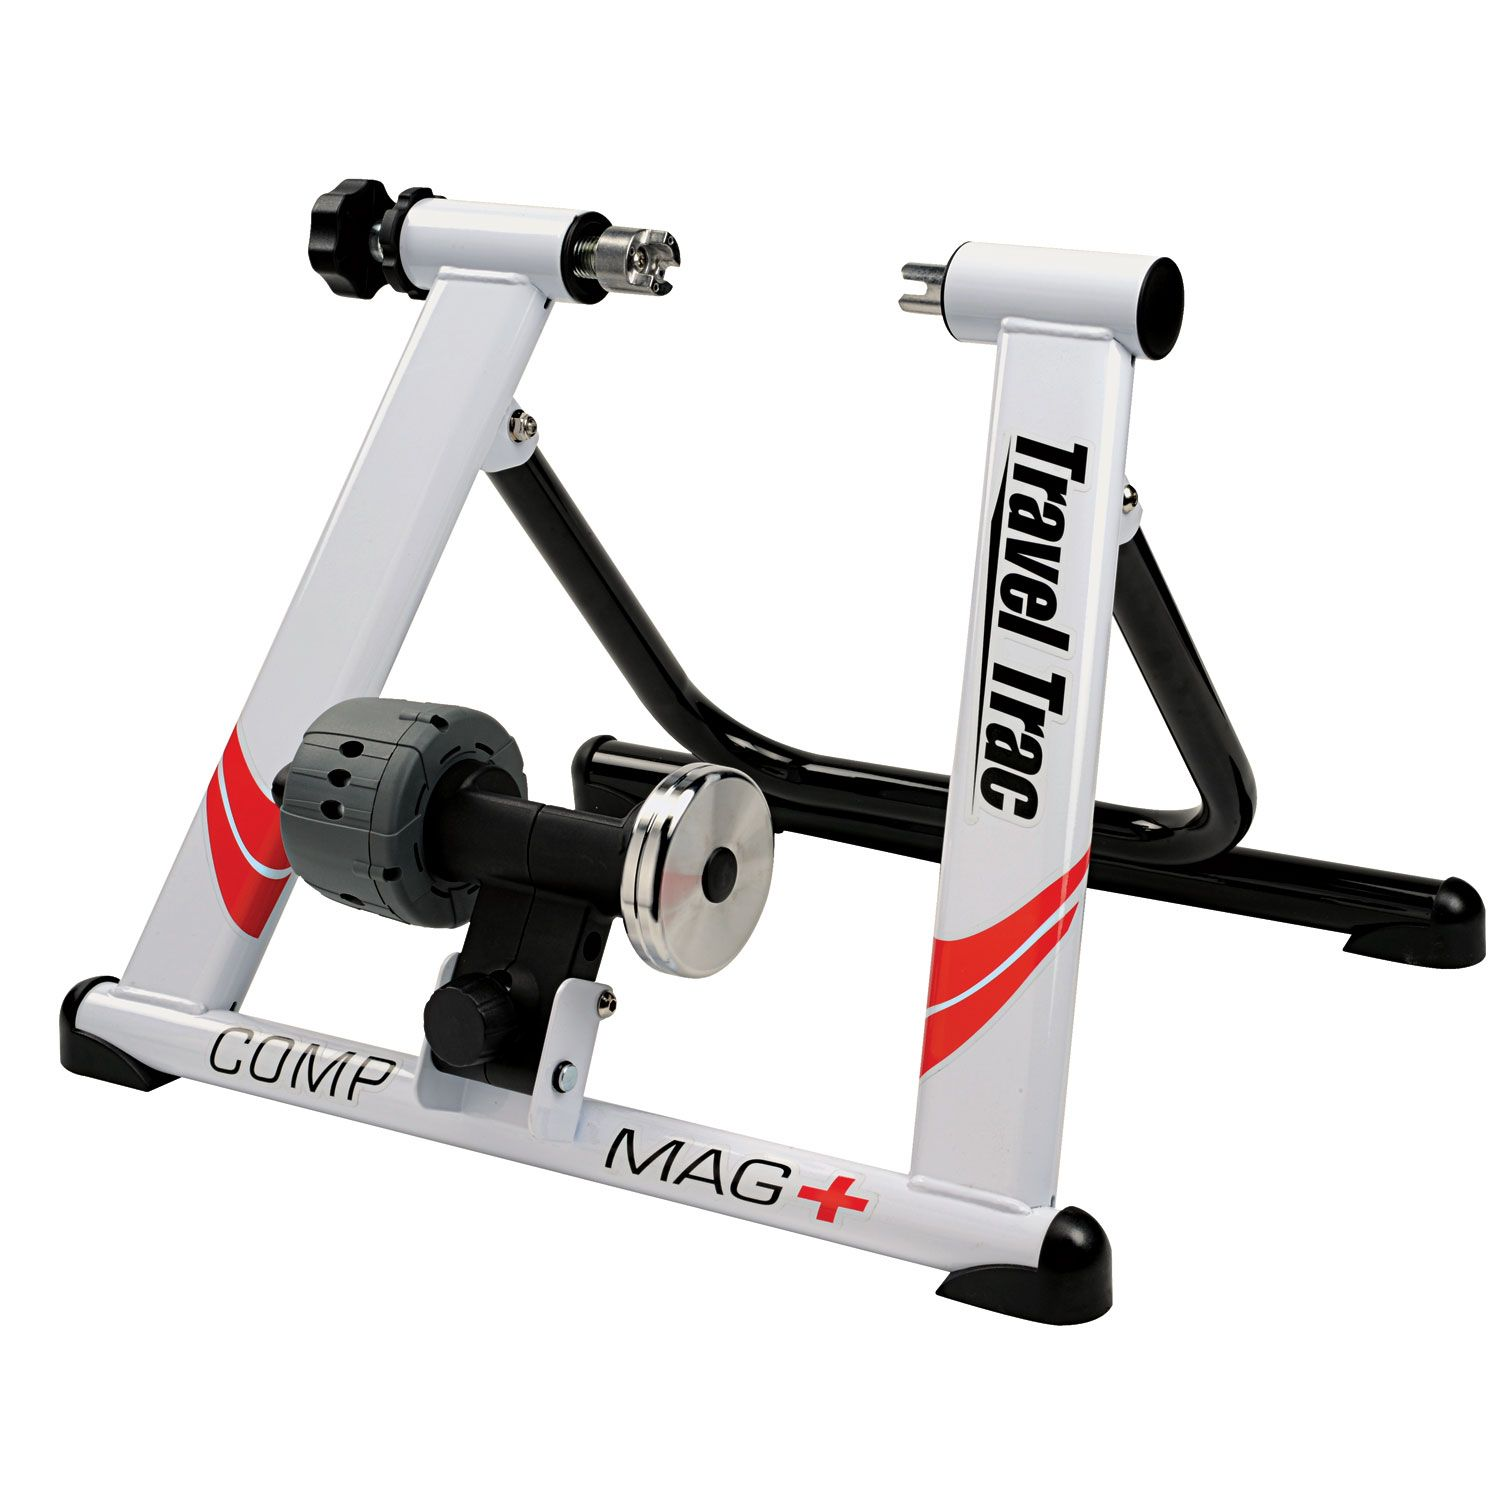 Travel Trac Comp Mag Trainer This Is An Inexpensive Trainer